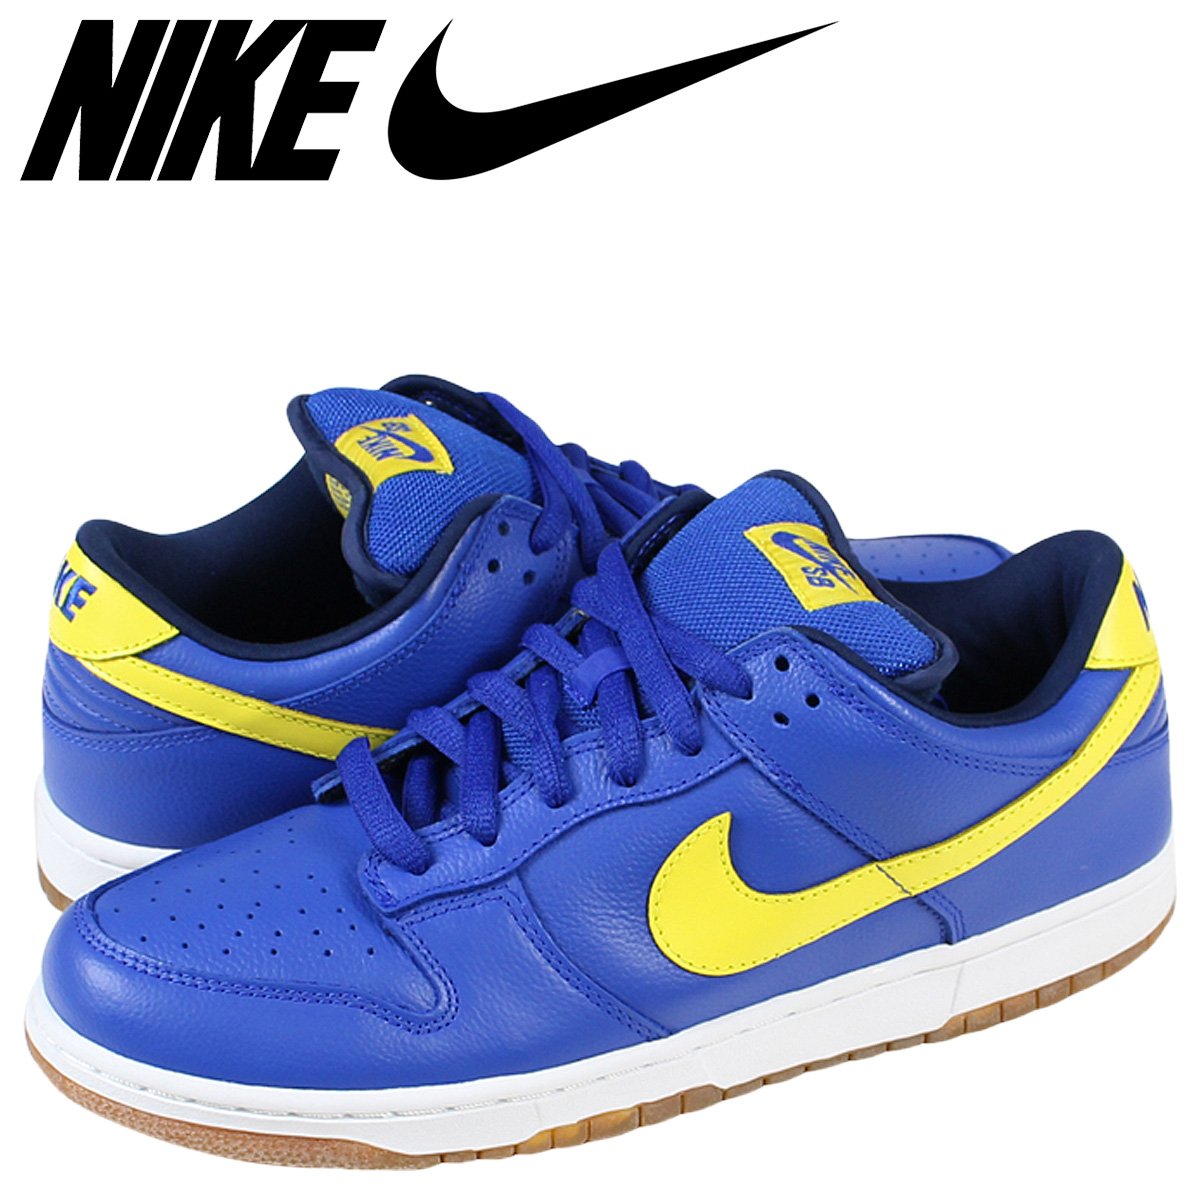 sweden gold blue mens nike dunk shoes e7dcb 5c326